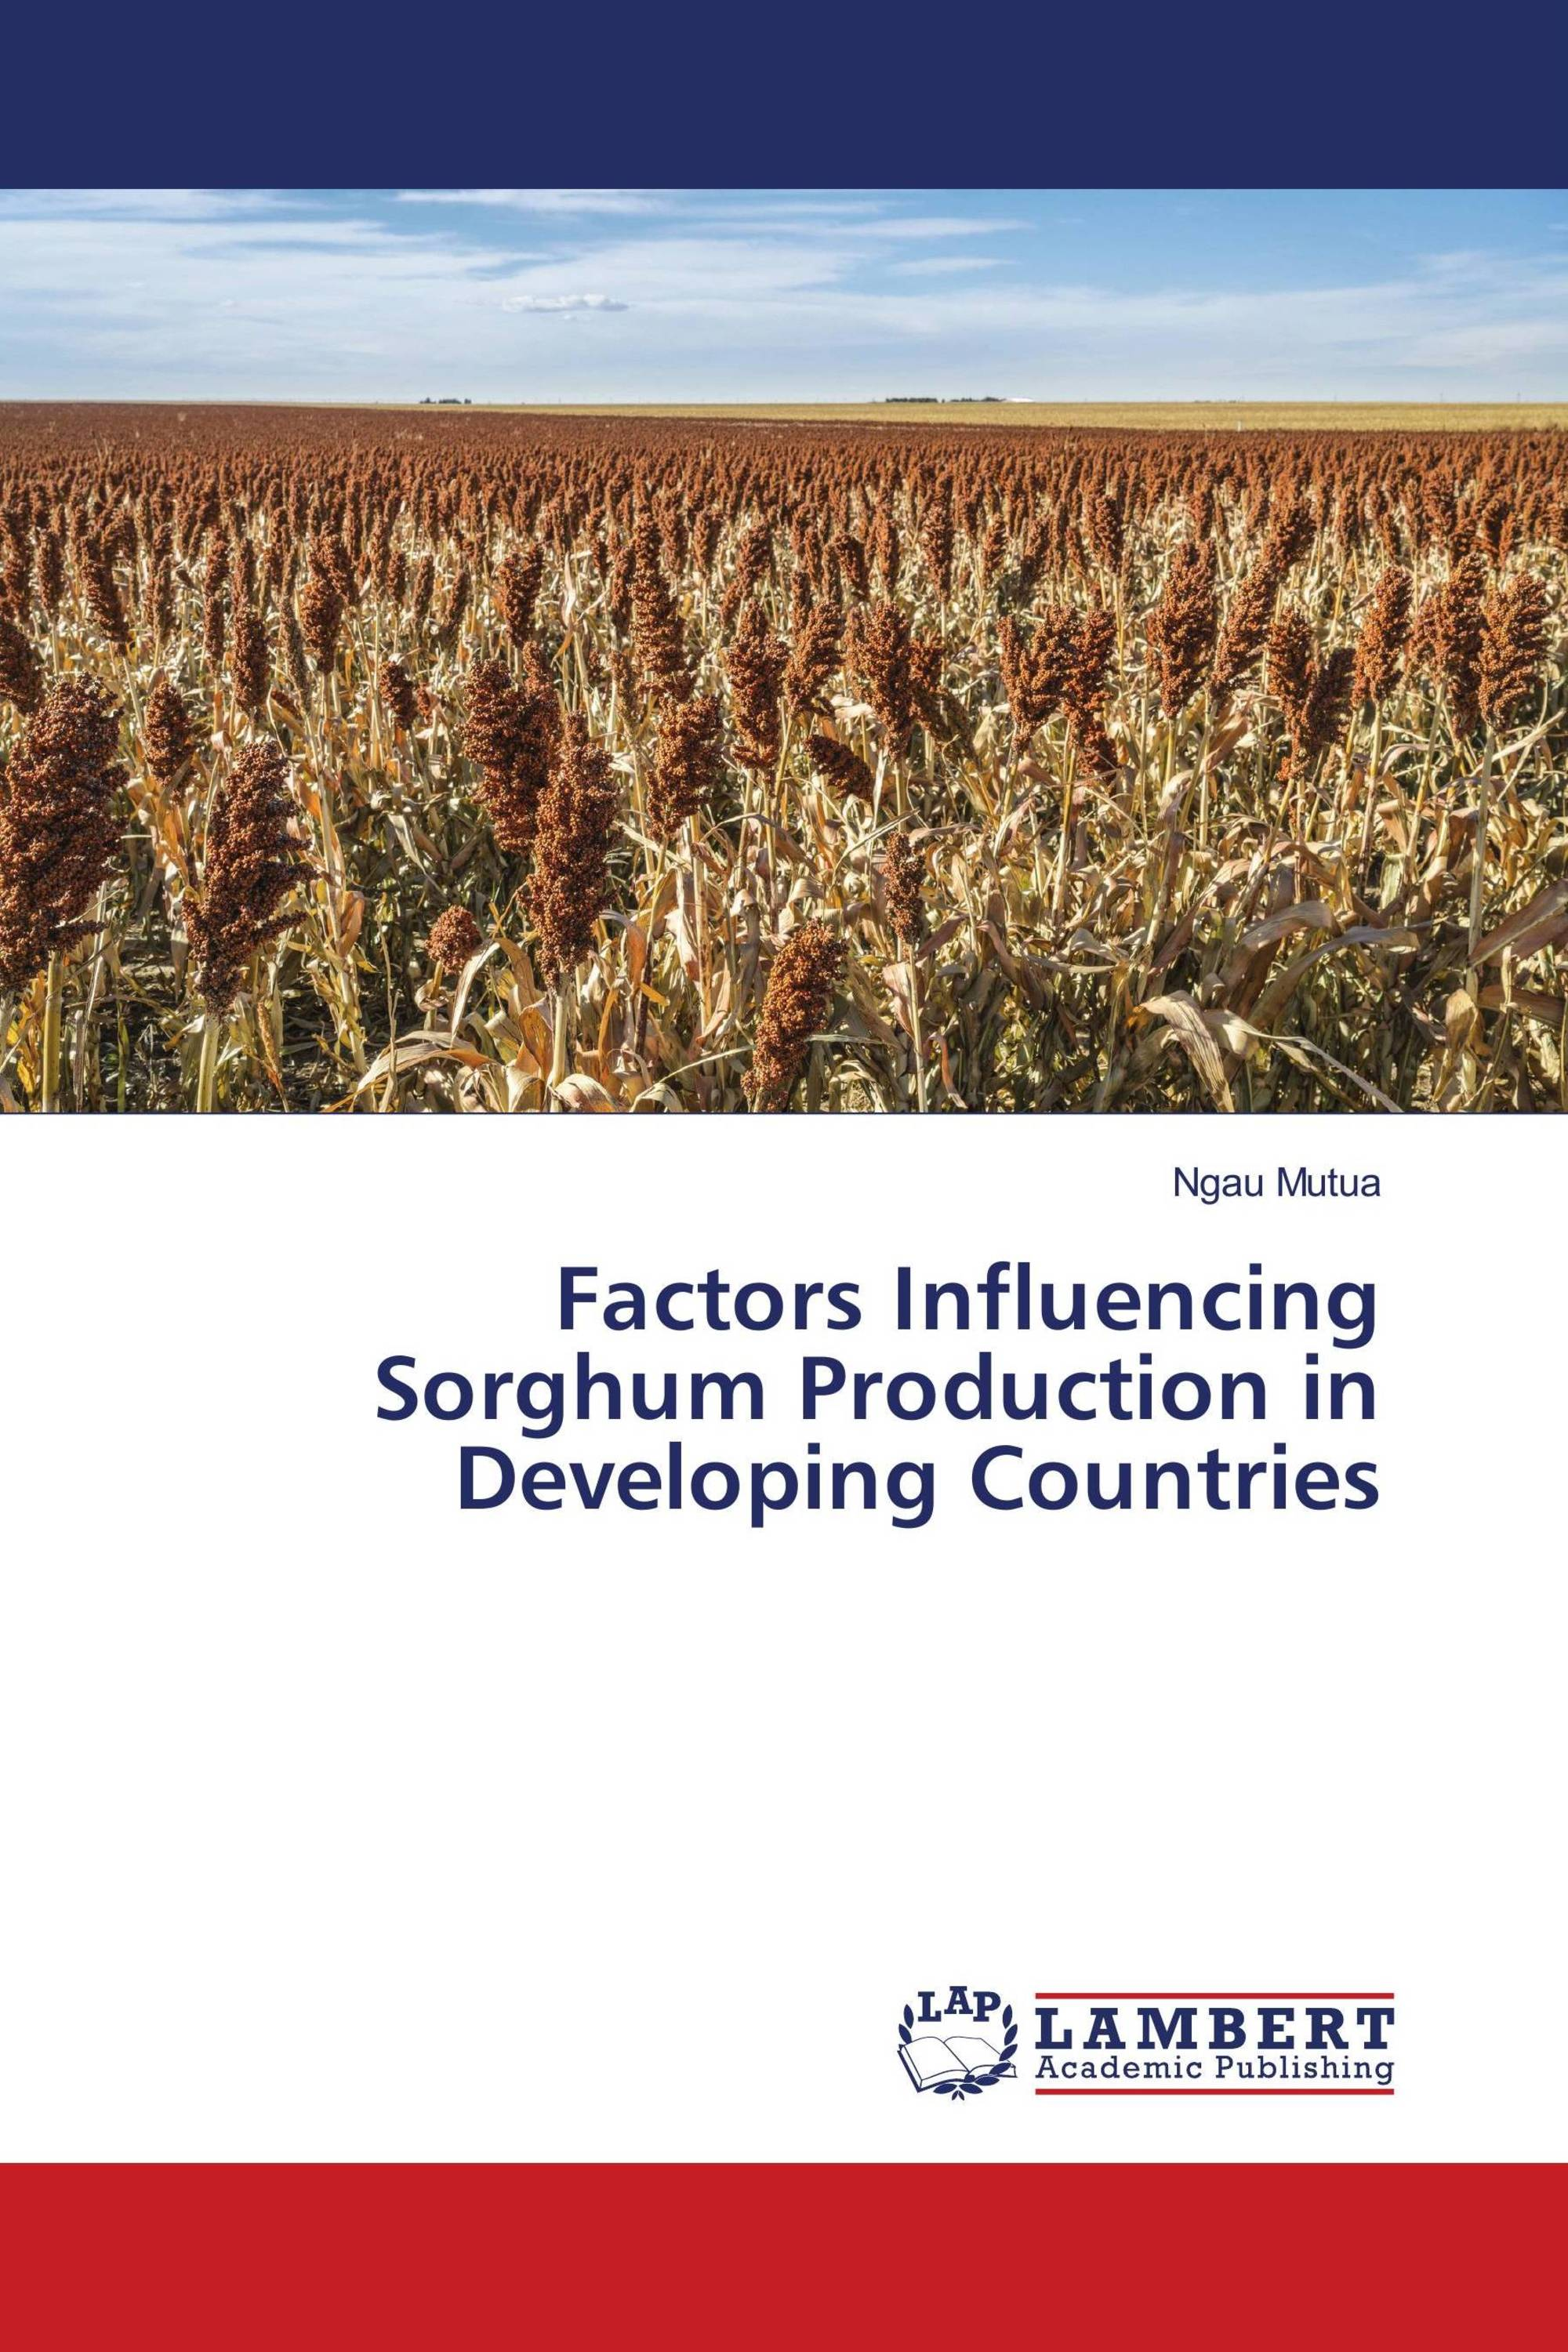 Factors Influencing Sorghum Production in Developing Countries